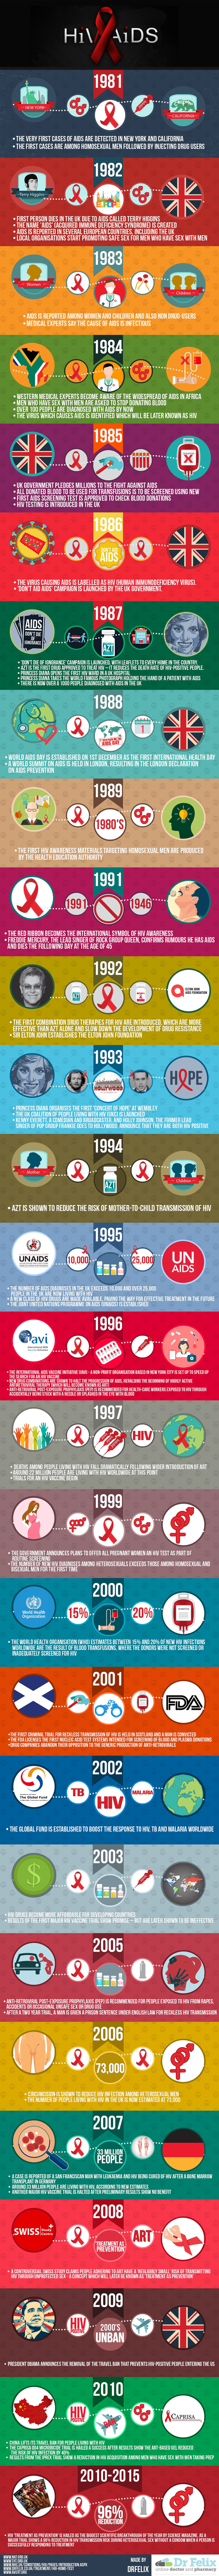 Discovery and Treatment of Aids HIV Timeline Infographic